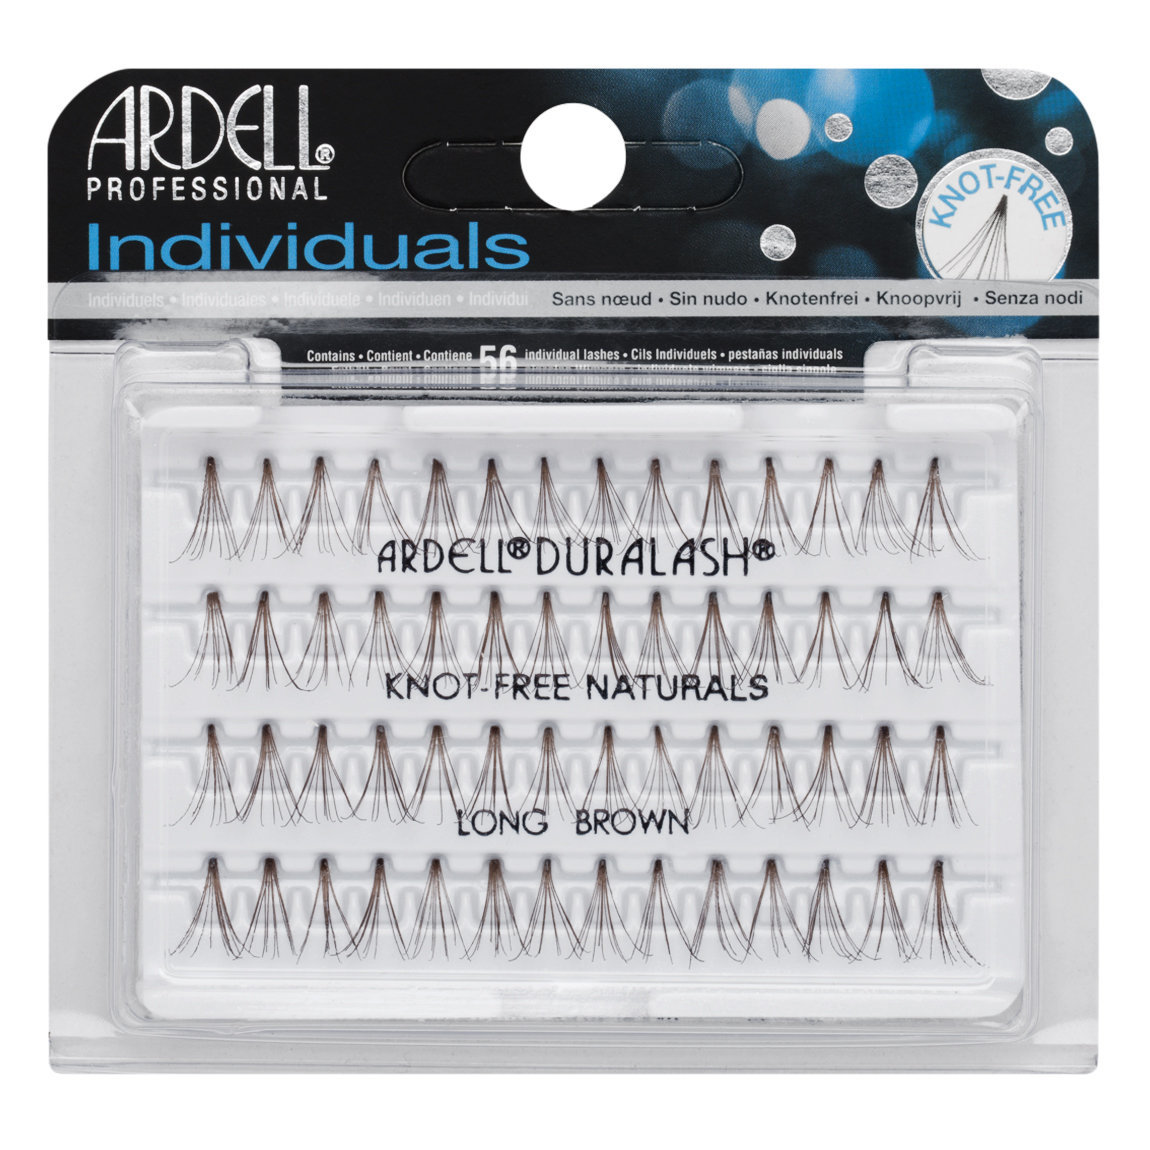 Ardell Individuals Knot-Free Natural Lashes Long Brown alternative view 1.